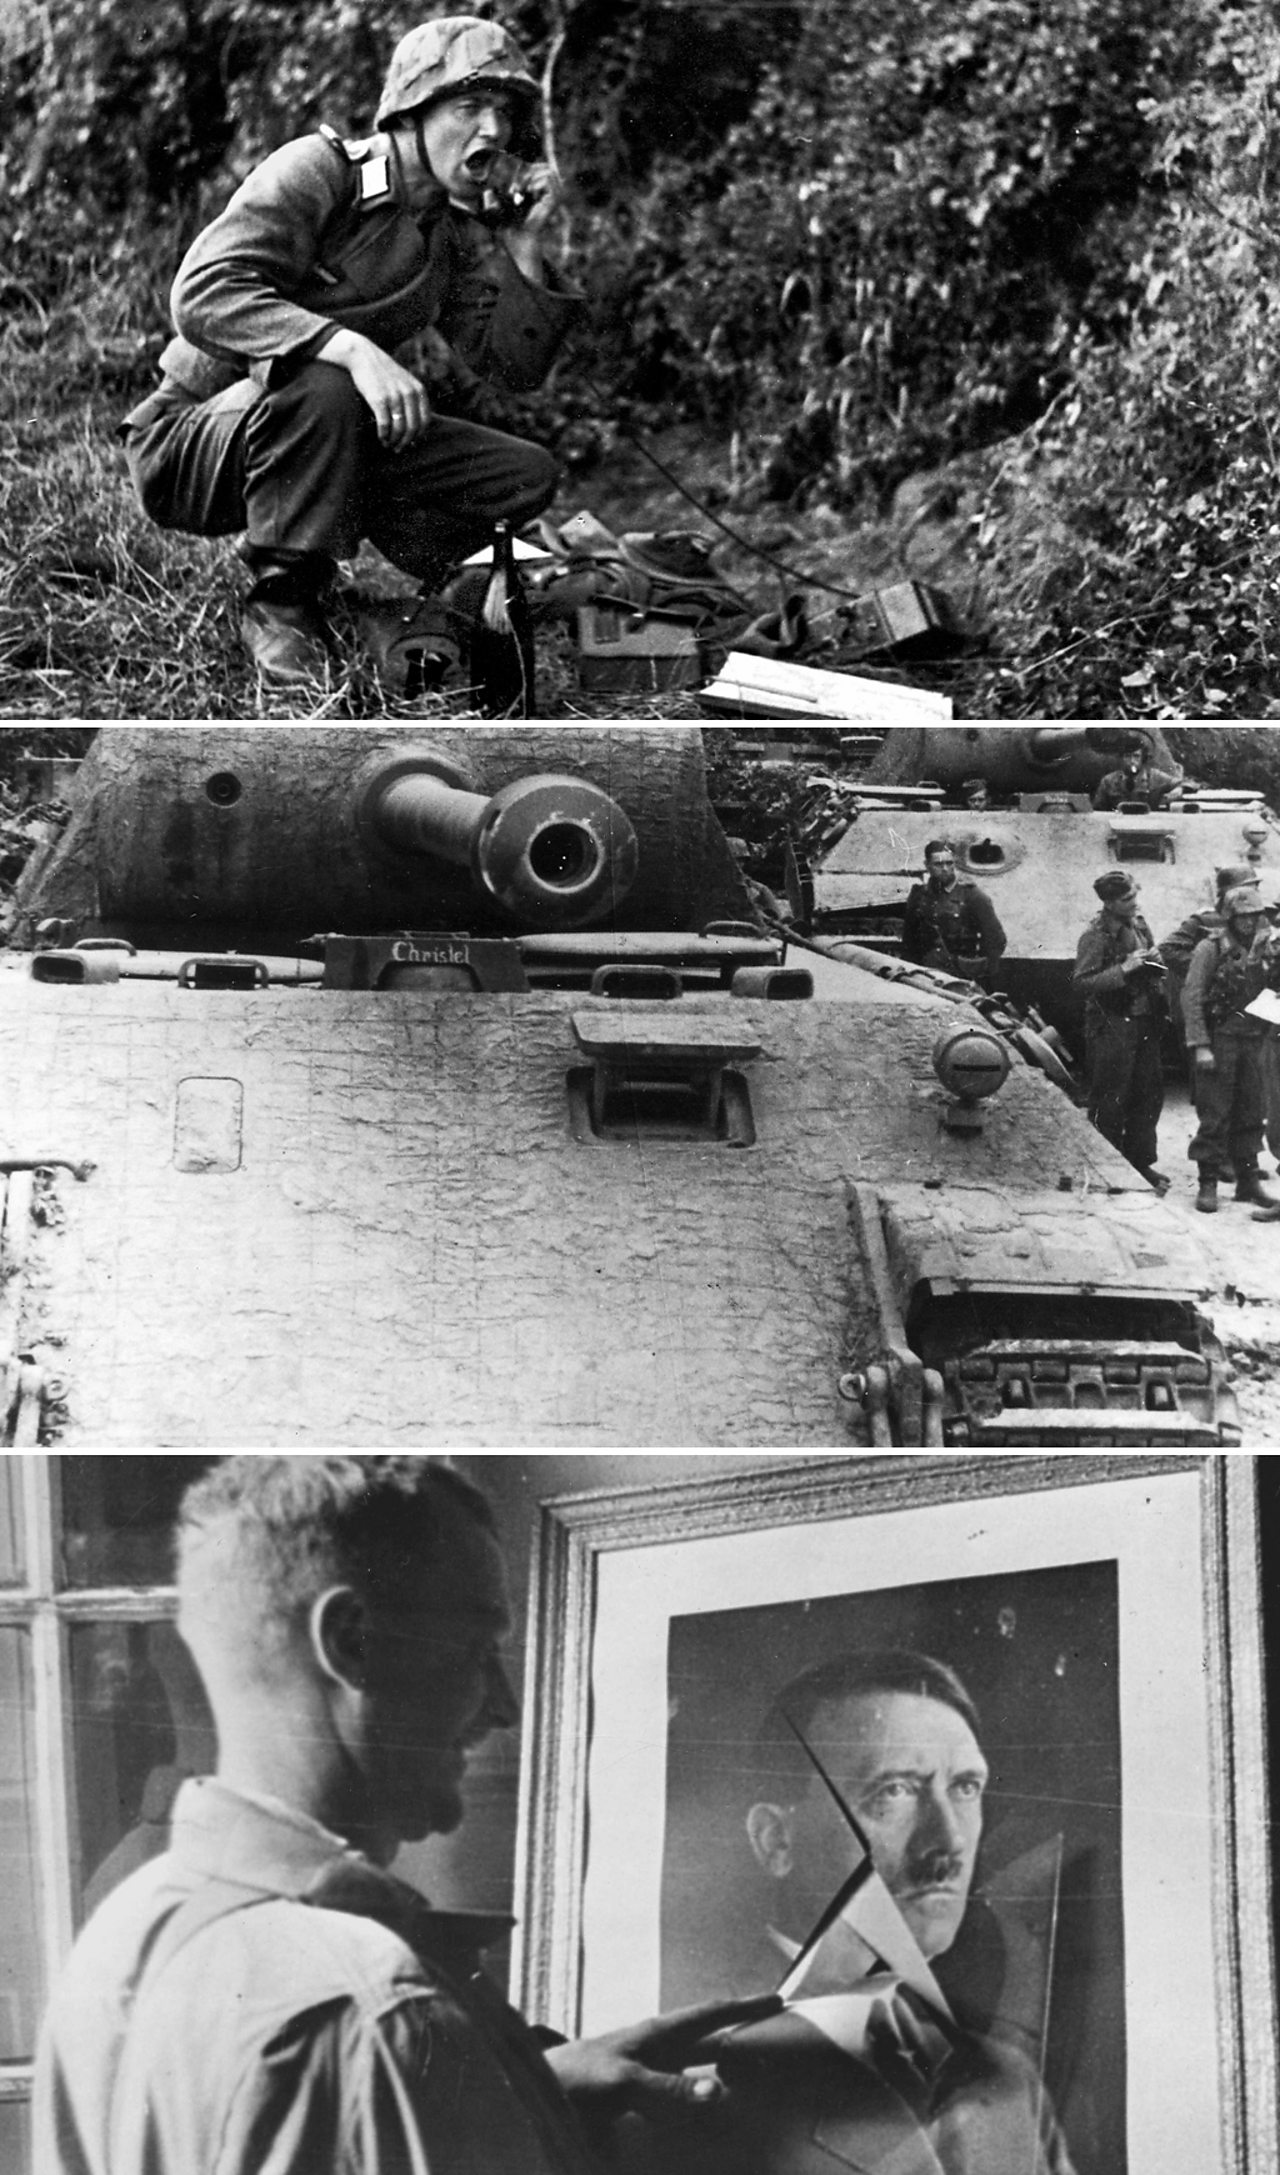 From top: German radio operator during D-Day; tank in Normandy; US GI, Sainte Mere Eglise standing beside a broken image of Adolf Hitler